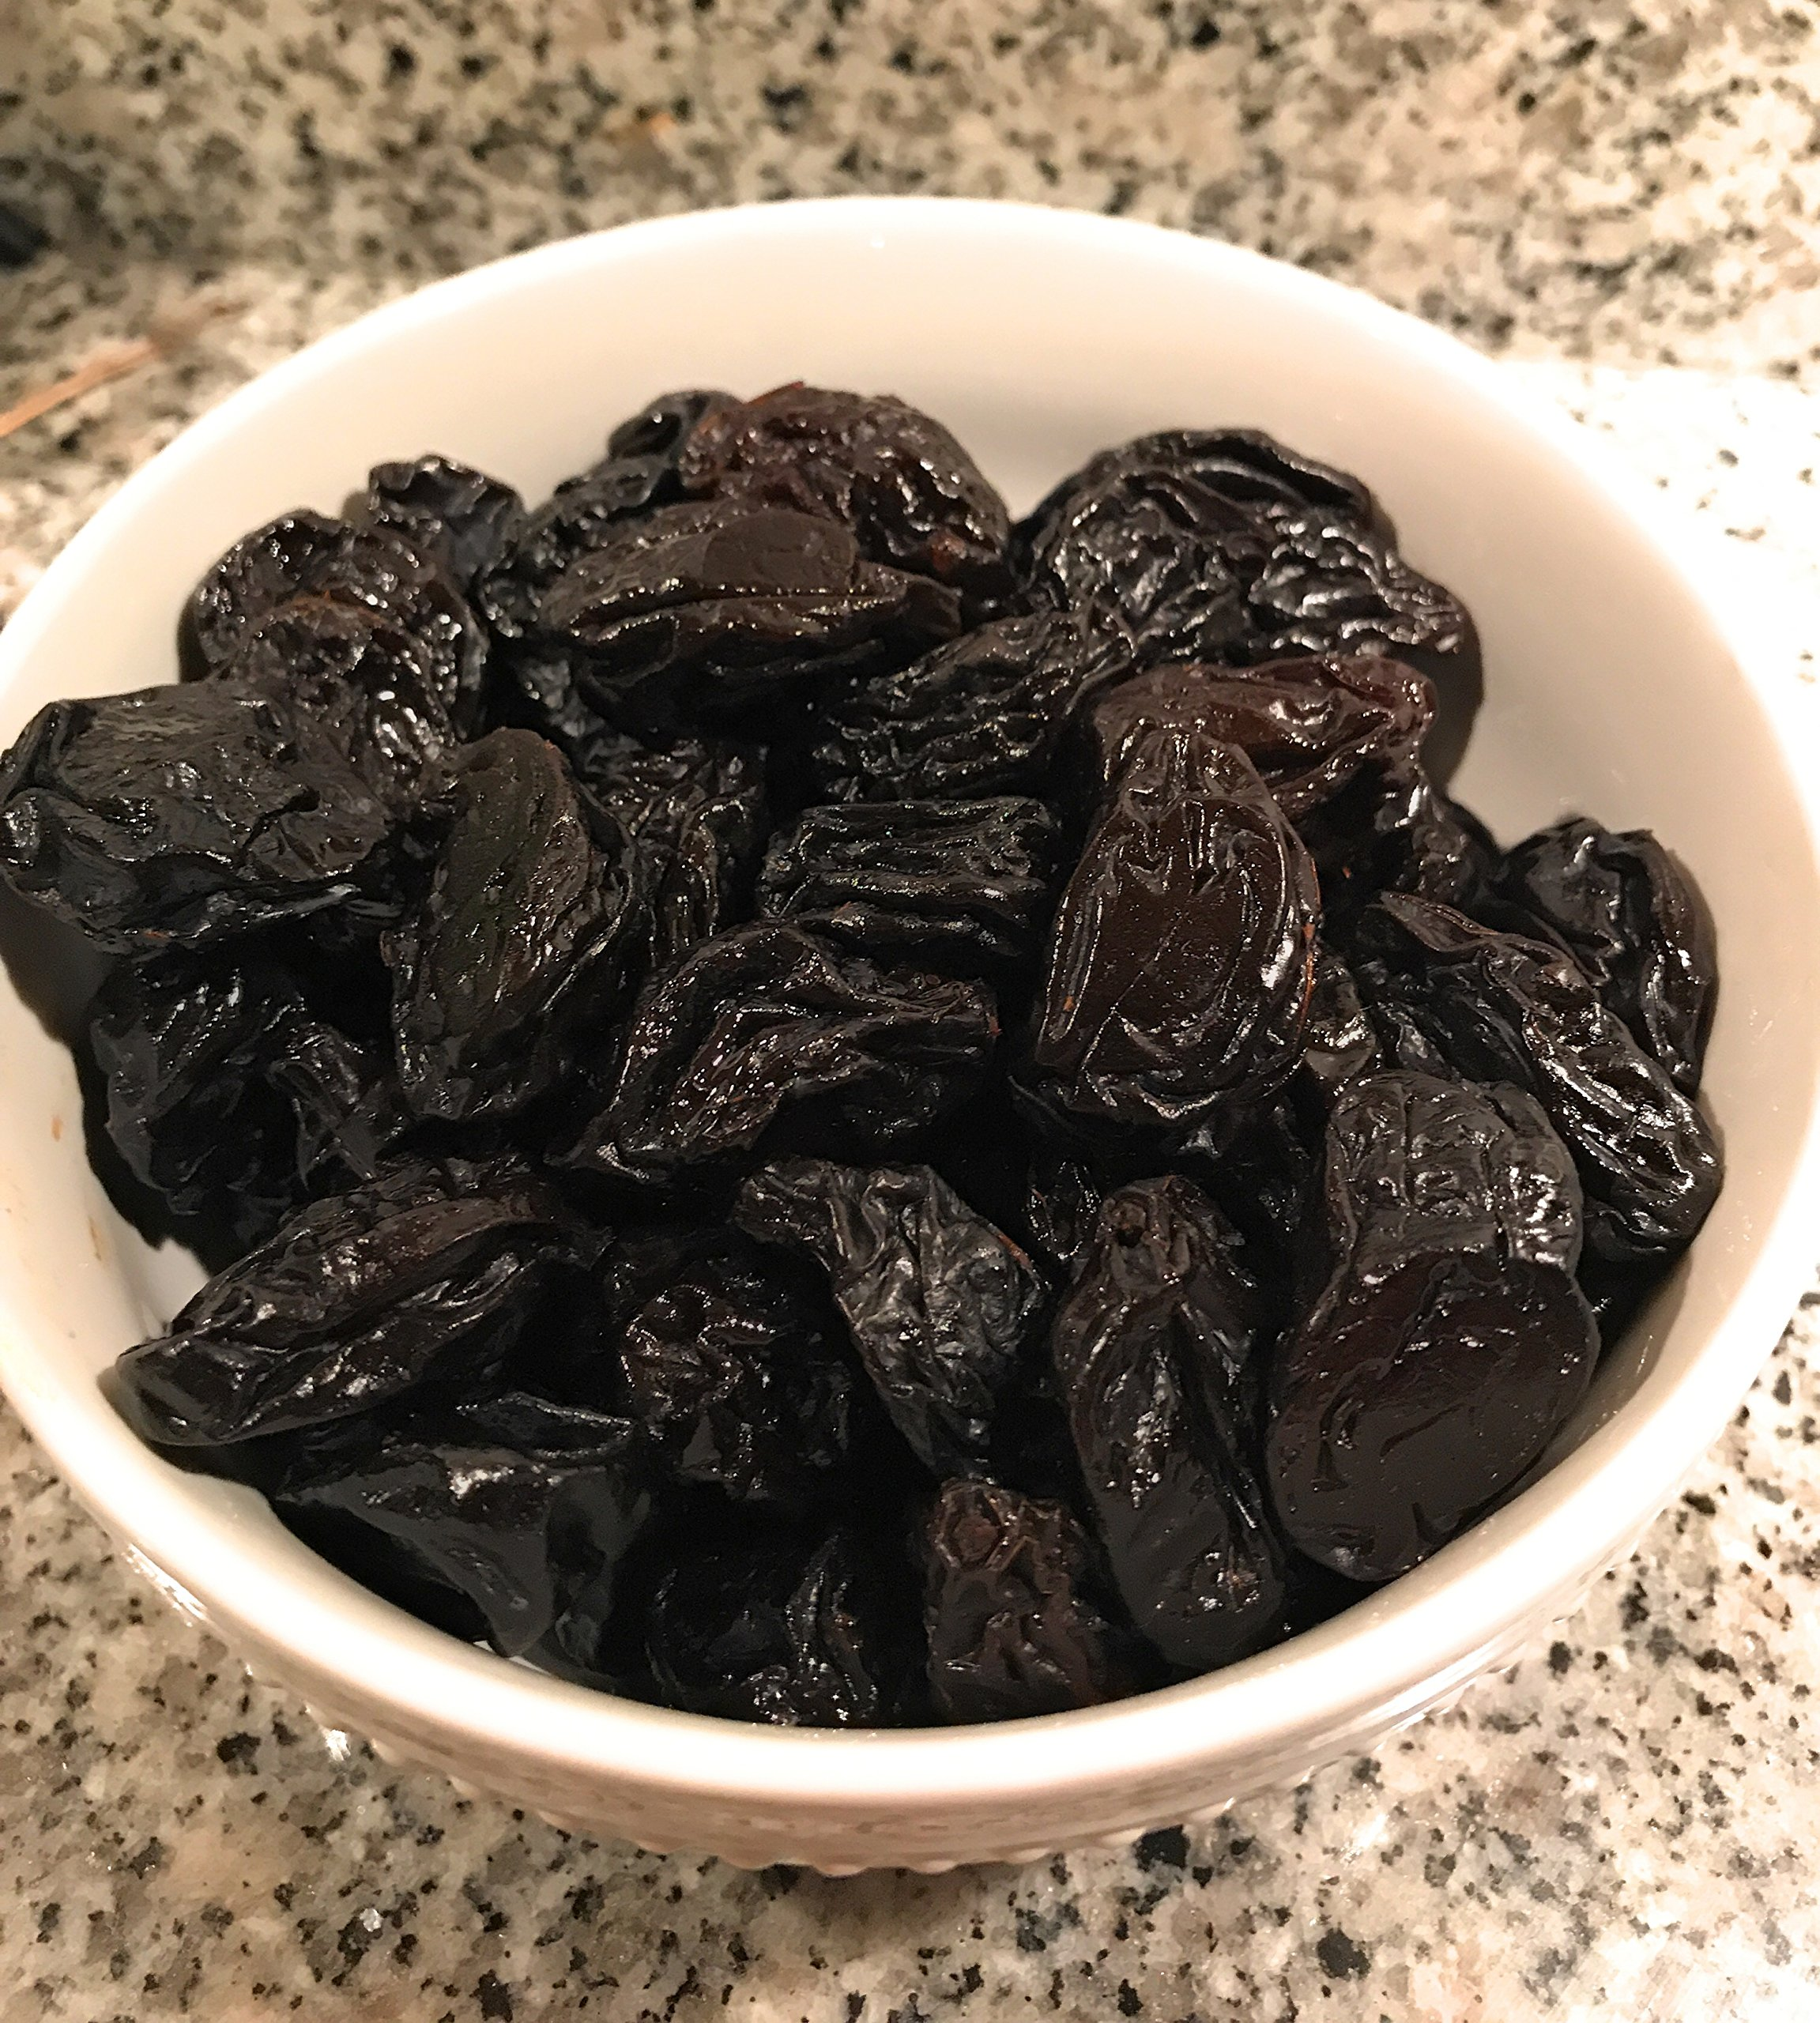 Sun Maid Pitted Prunes - 4 16 oz Canisters of Delicious Dried Prunes - GREAT VALUE by SunMaid (Image #5)